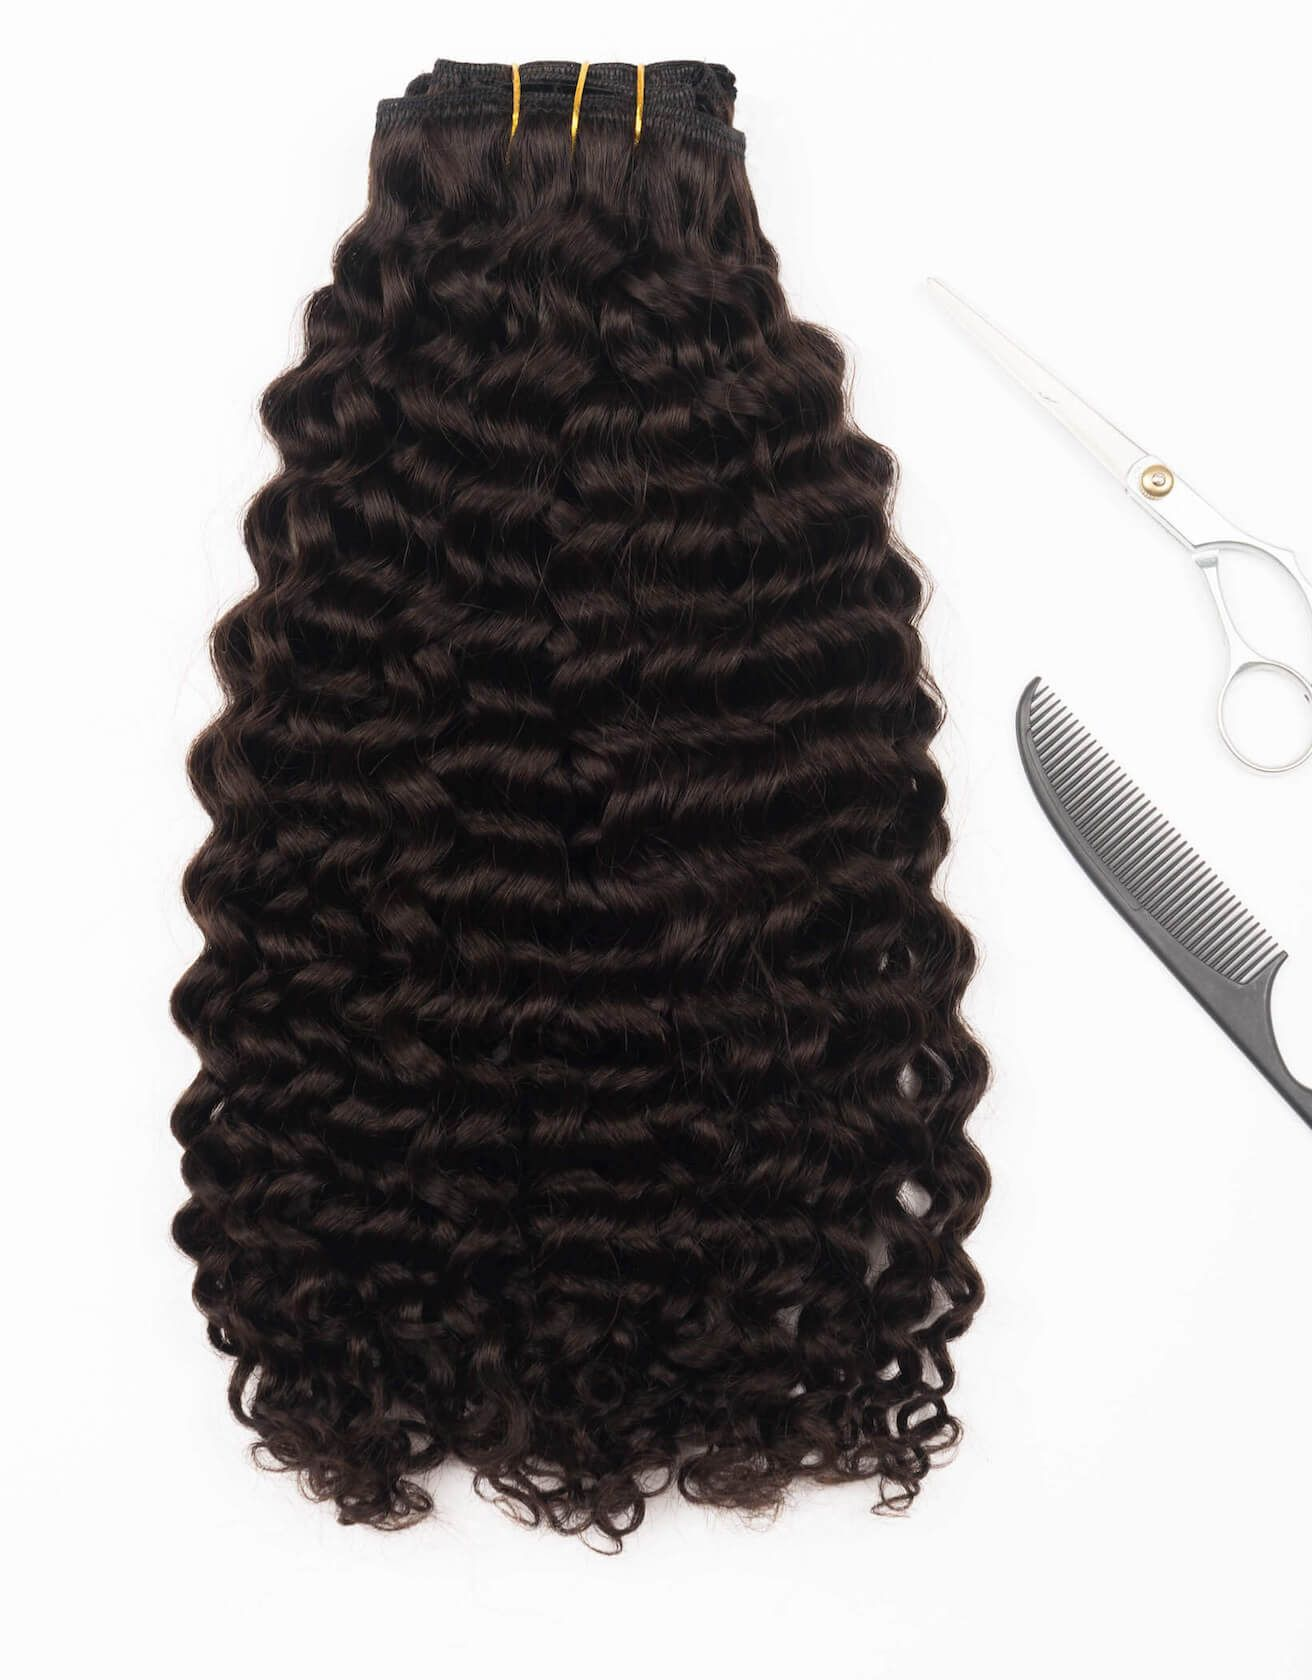 Curly Clip In Set With Images Curly Clip Ins Curly Hair